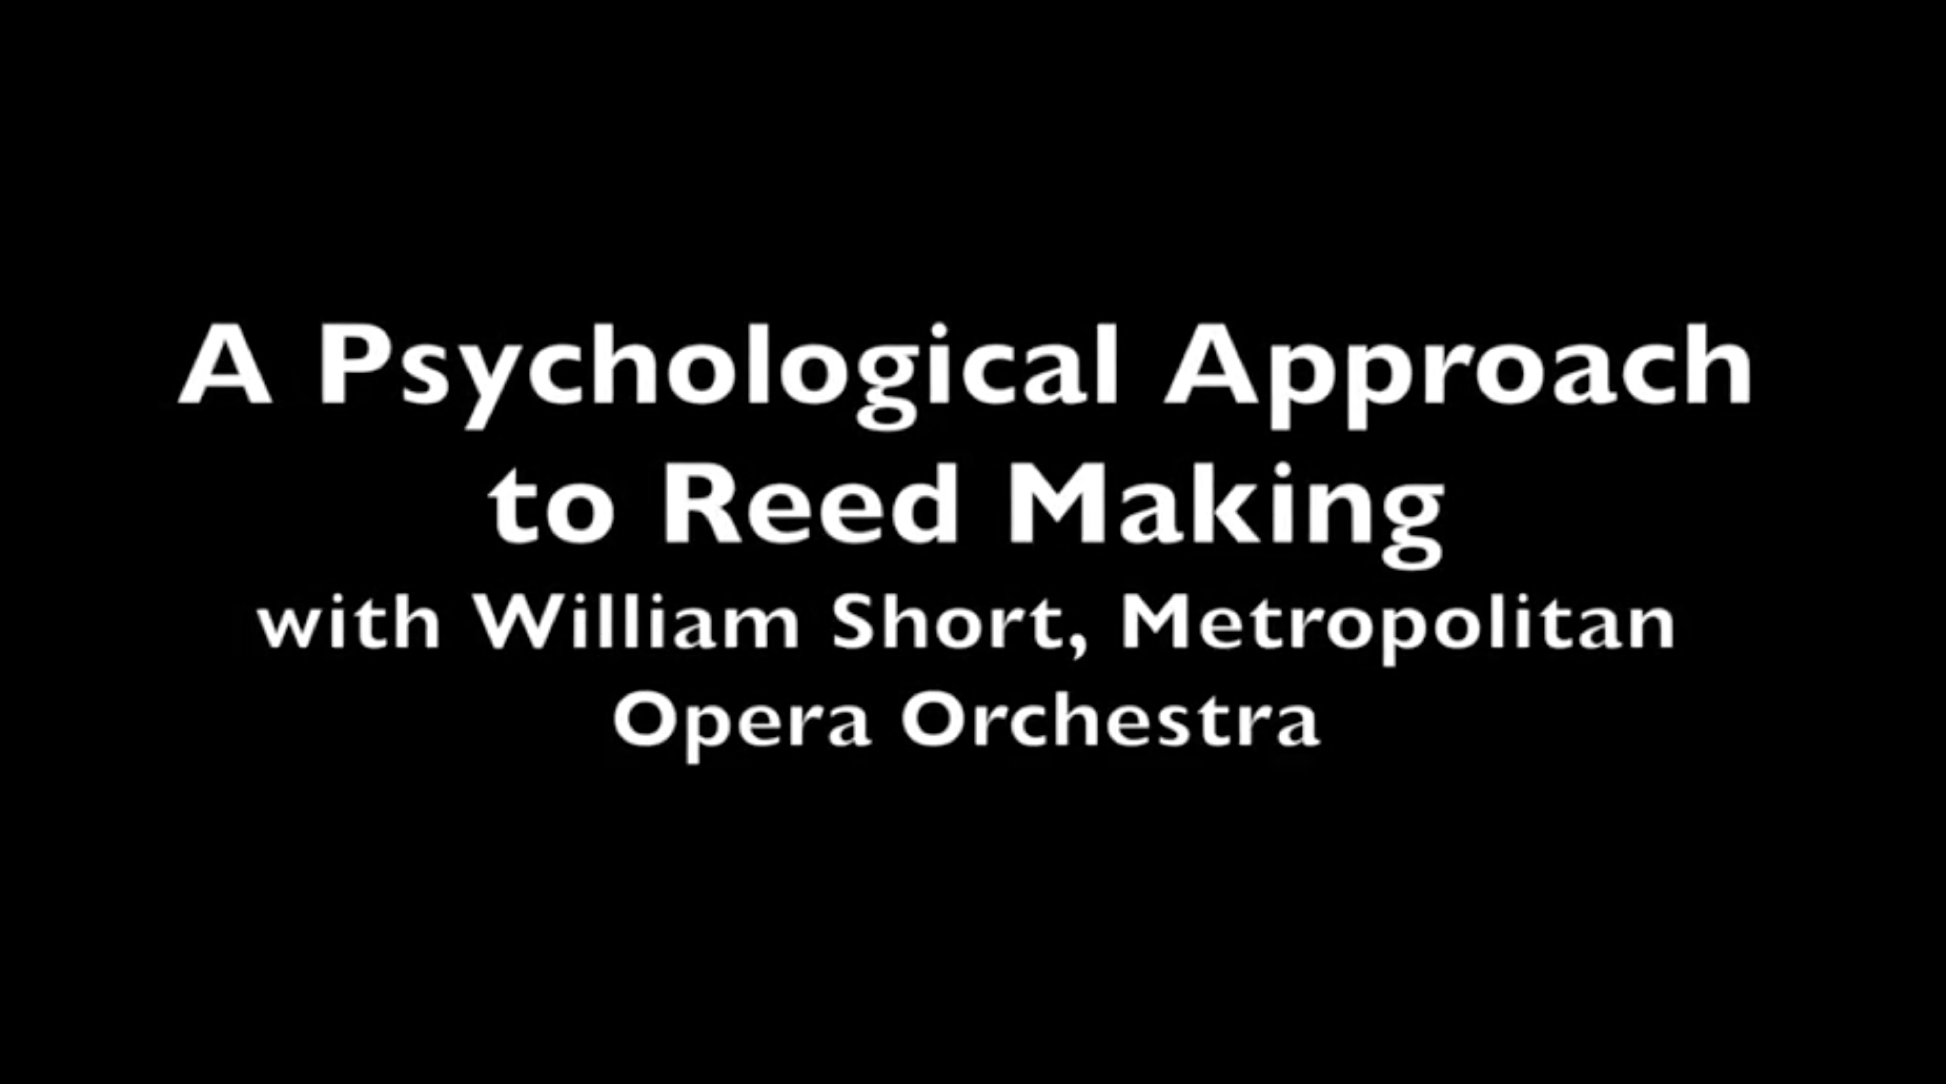 A psychological approach to Reed Making